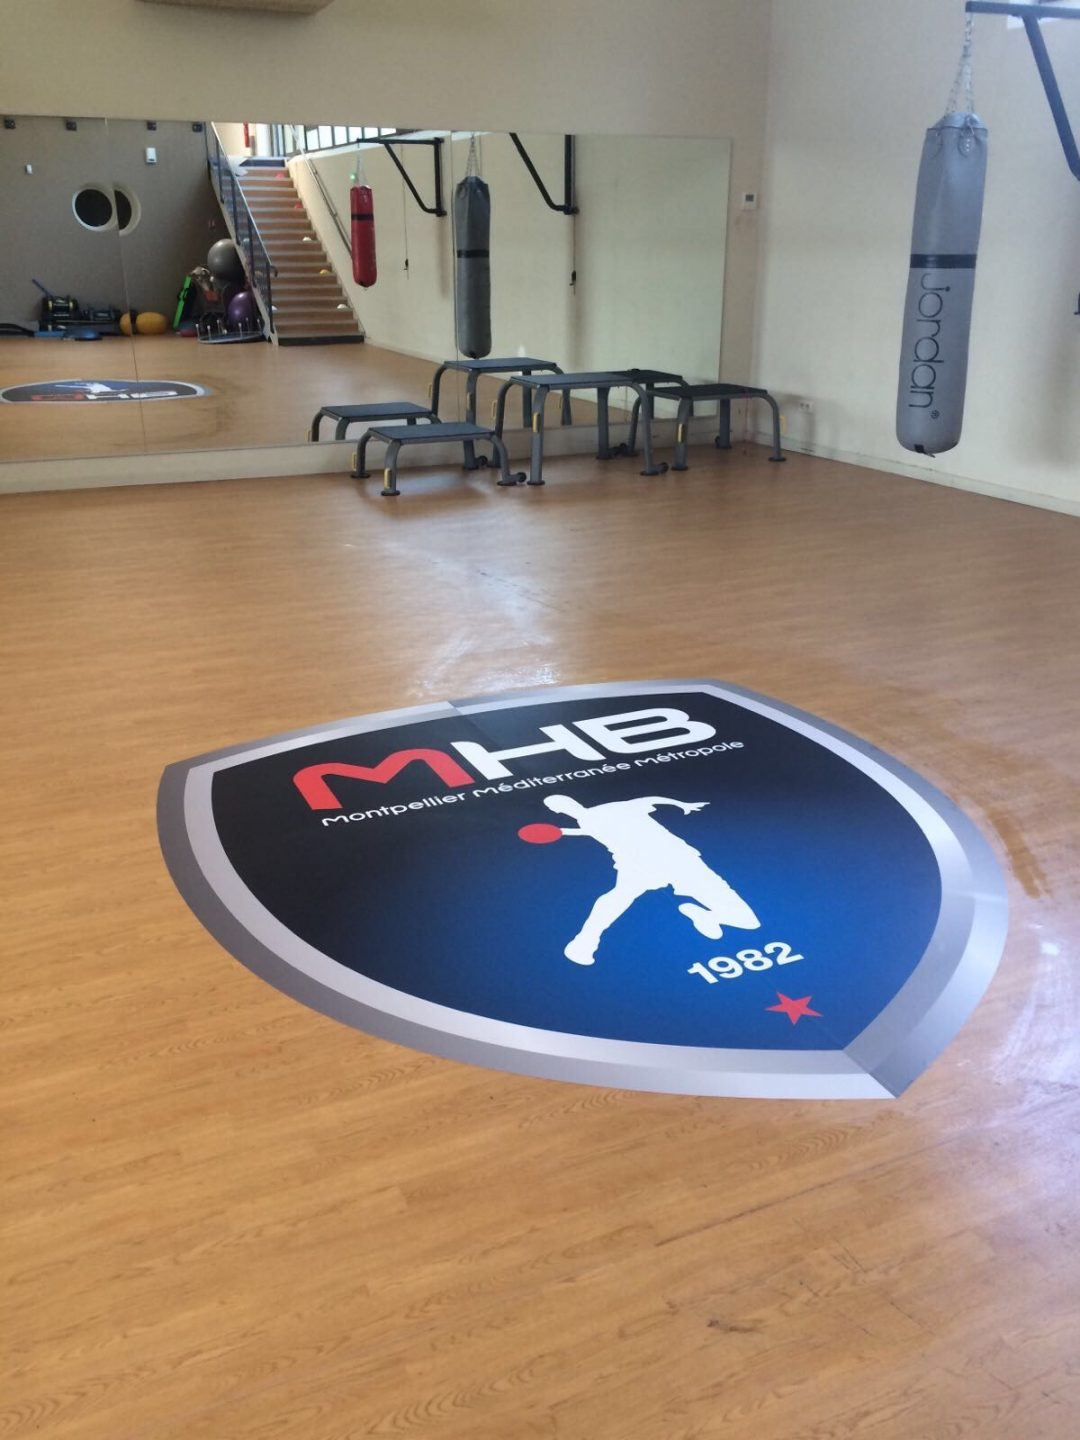 Sticker repositionnable IND'n'GO pour terrain de handball - MHB